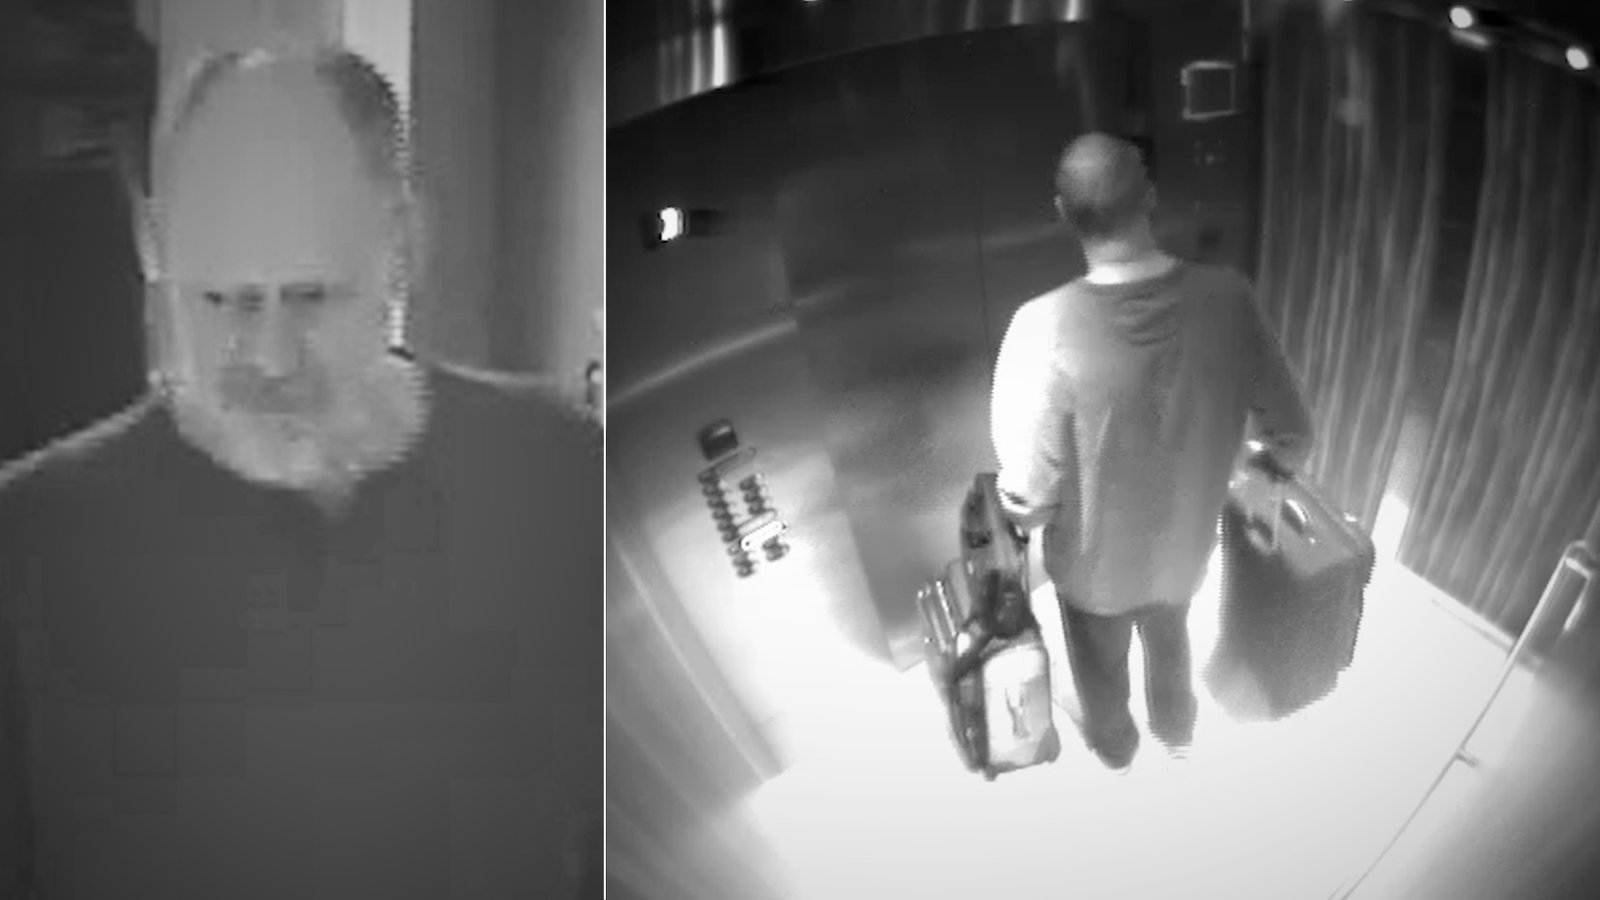 Using exclusive surveillance footage obtained from MGM Resorts, we pieced together the last days of Stephen Paddock, the Las Vegas gunman. He plays video poker, laughs with hotel staff and hauls bag after bag of weapons into his suite.